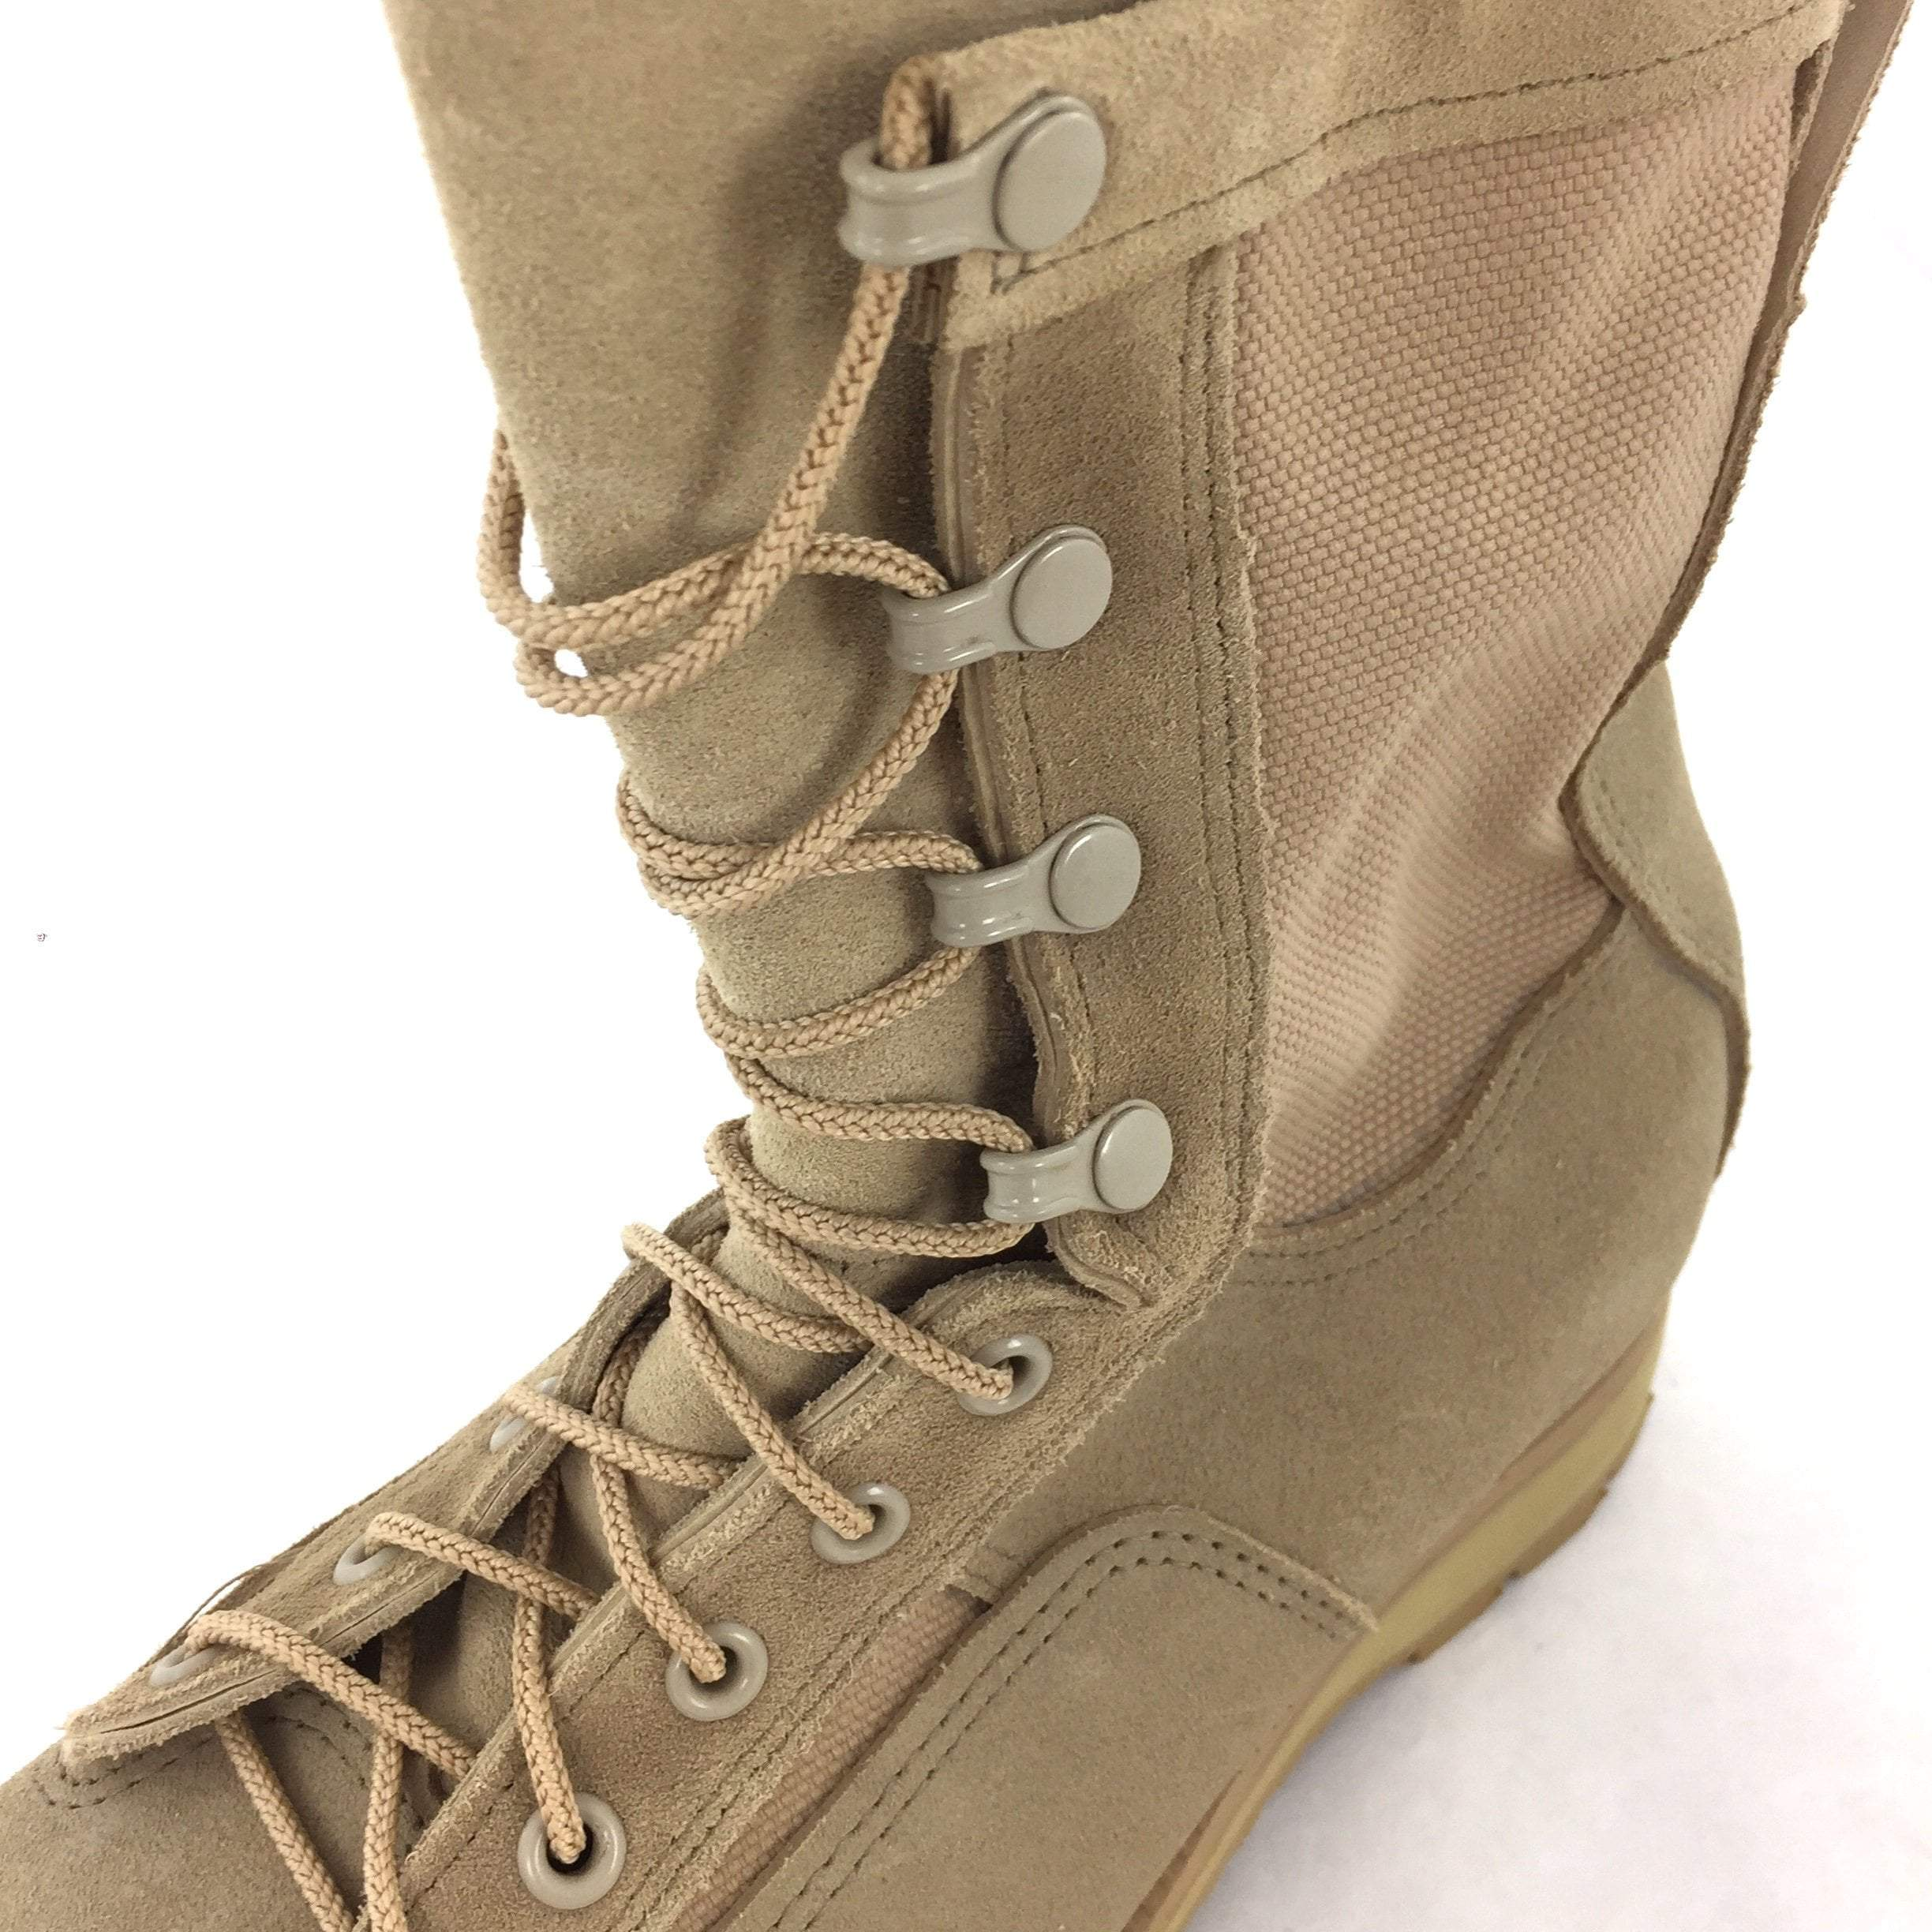 McRae Temperate Weather Combat Boots, Size 5.5W Sand Tan, 09-D-0011